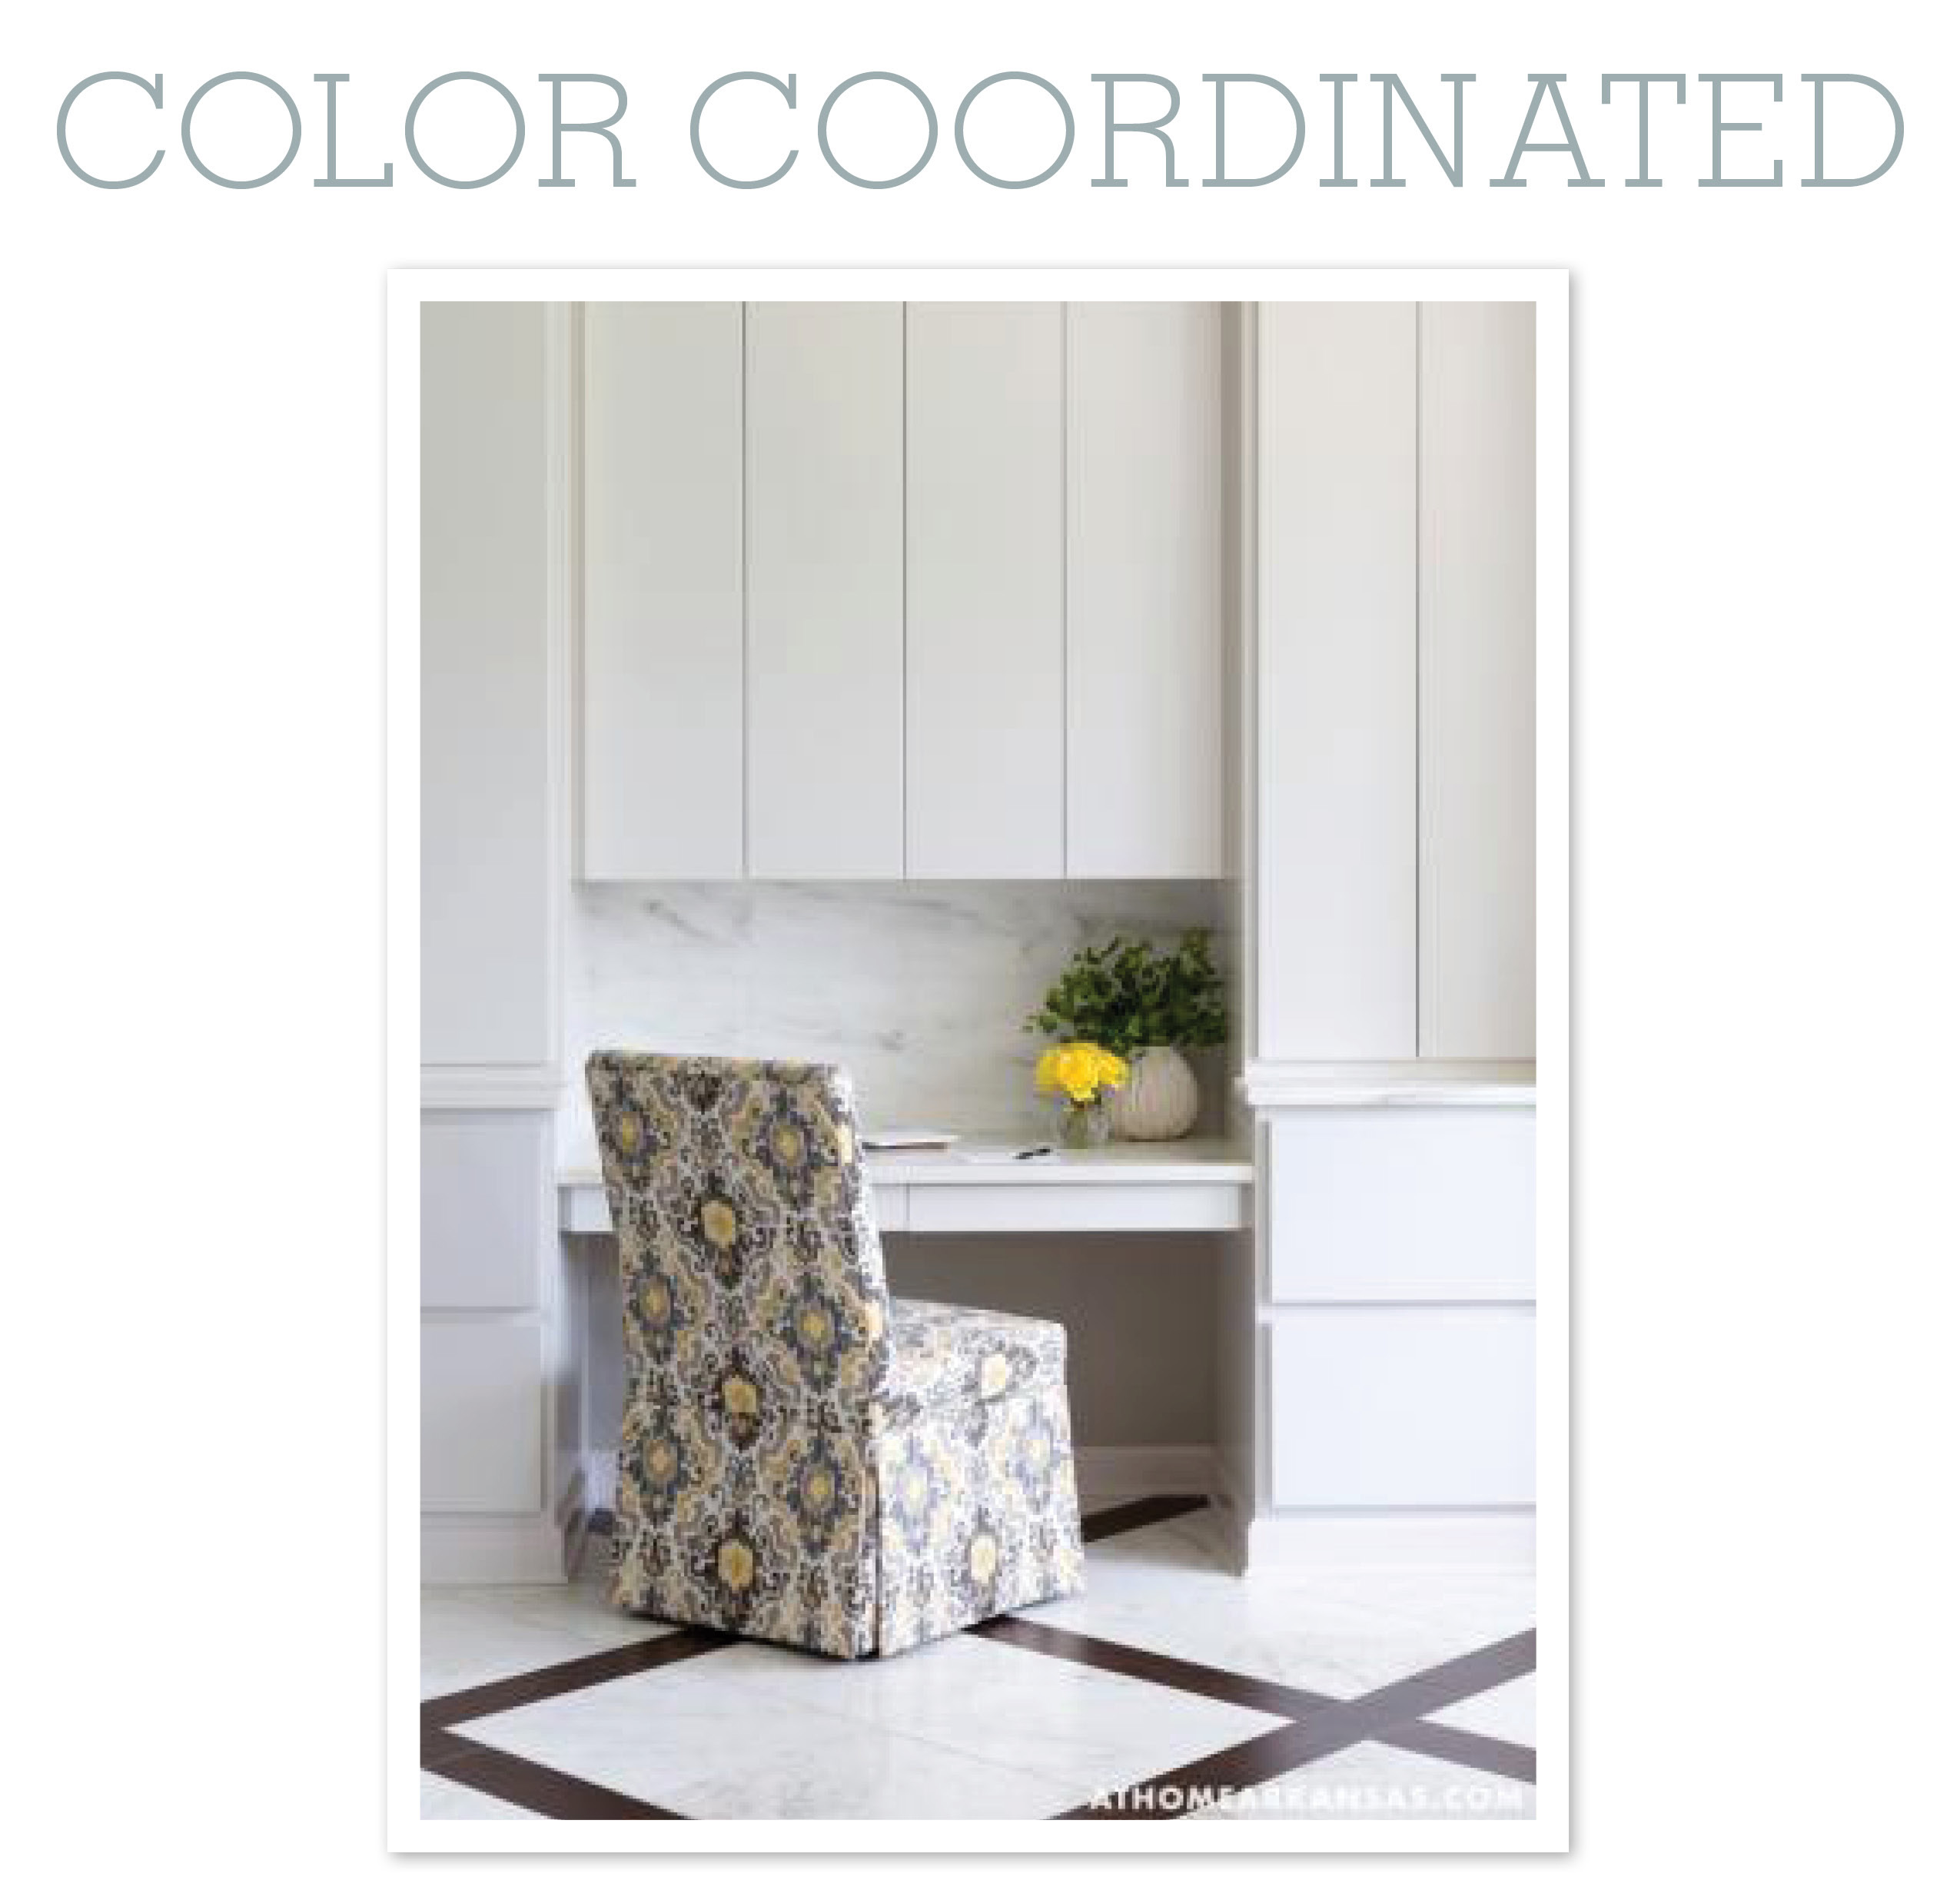 Color Coordinated: All Together Now | At Home in Arkansas blog